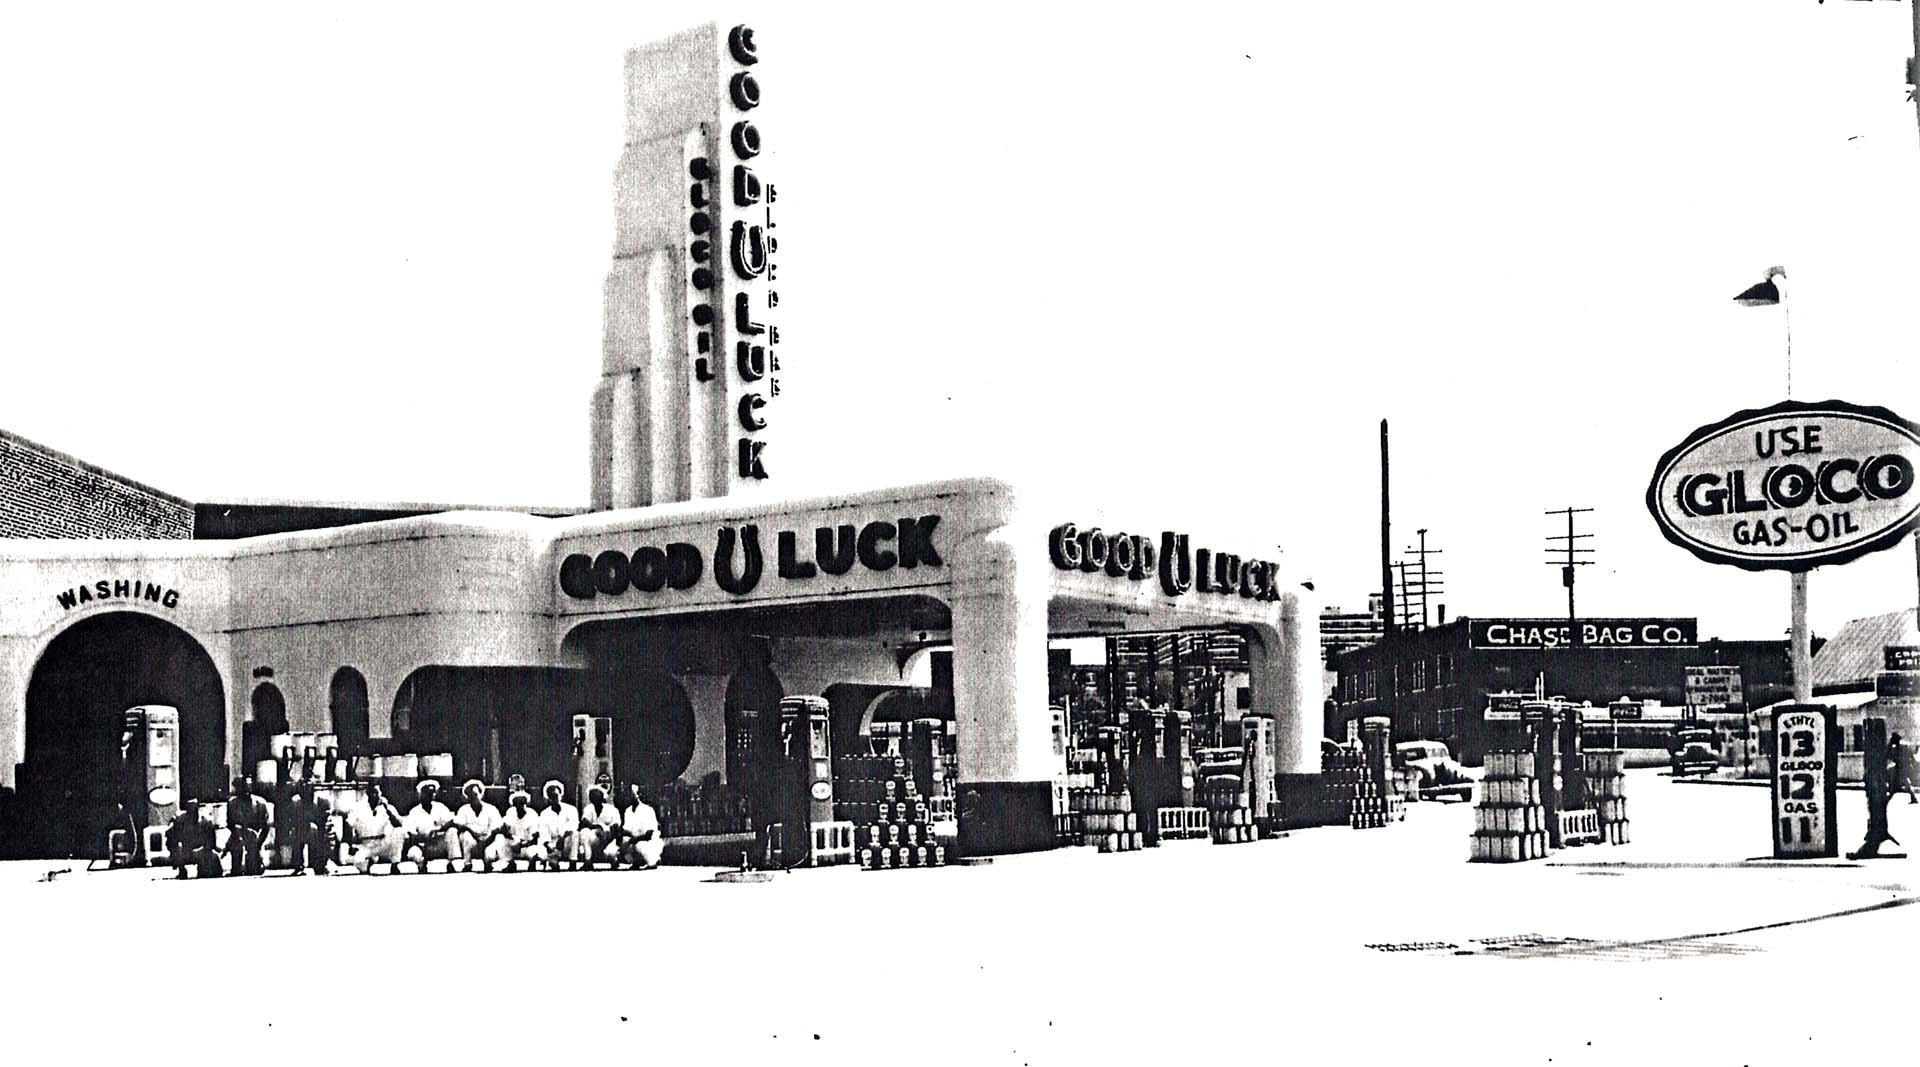 Home_0_Good_Luck_Oil_Company_Service_GLOCO_Petroleum_Petroliana_Ethyl_Gasoline_Fuel_Signs_Collectables_Store_Museum_History_Dallas_Fort_Worth_Texas_Gas_Drepression_Era_Art_Deco_Architecture.jpg